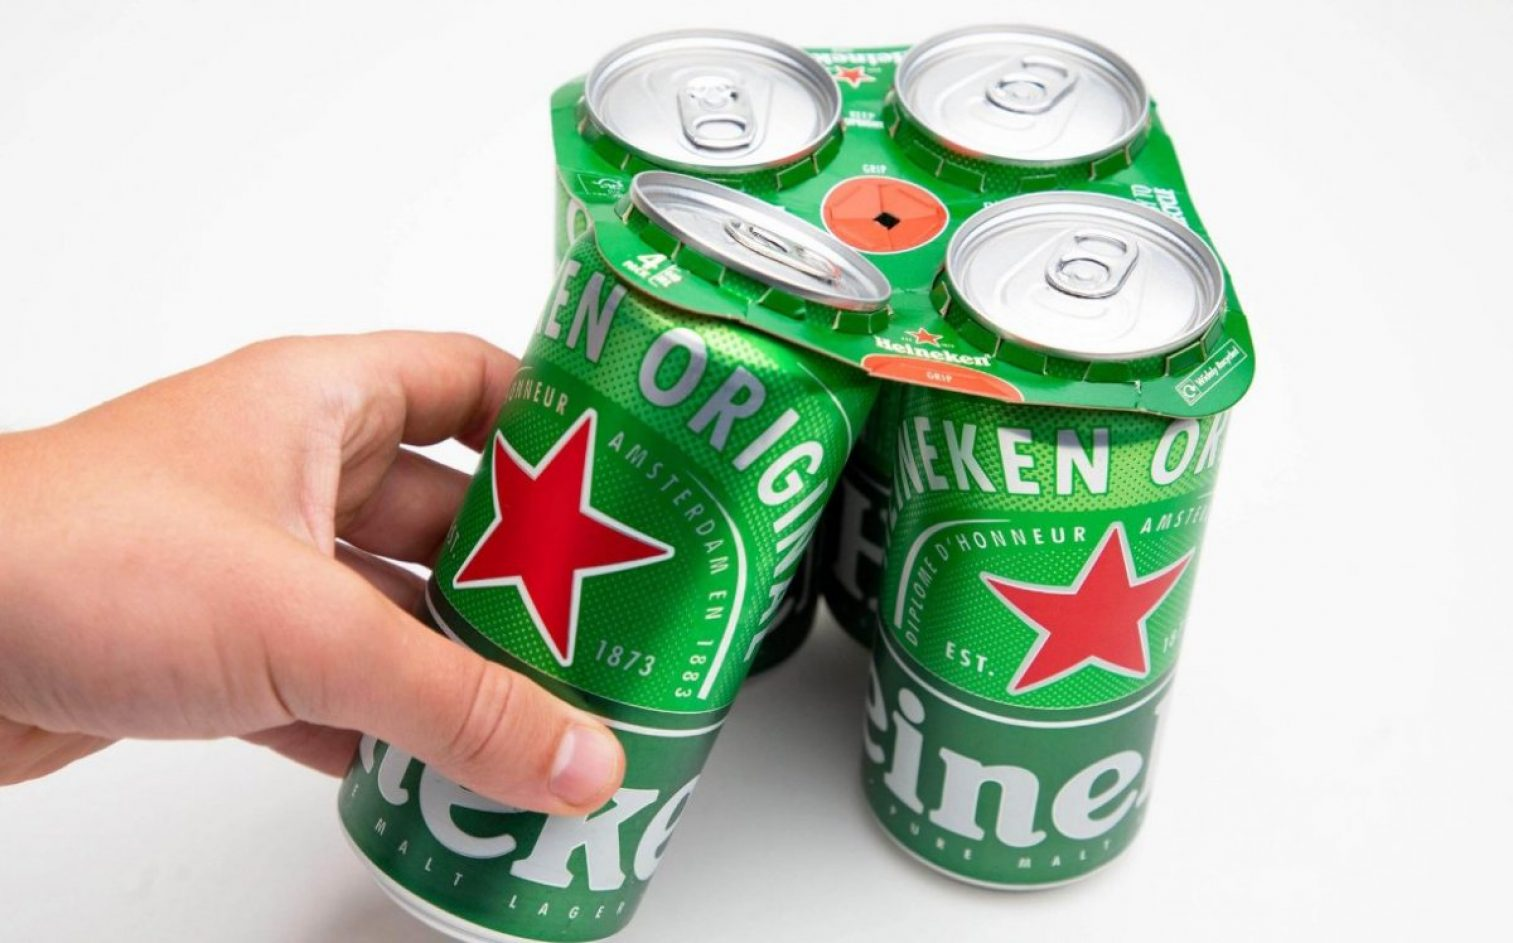 Heineken Green Grip